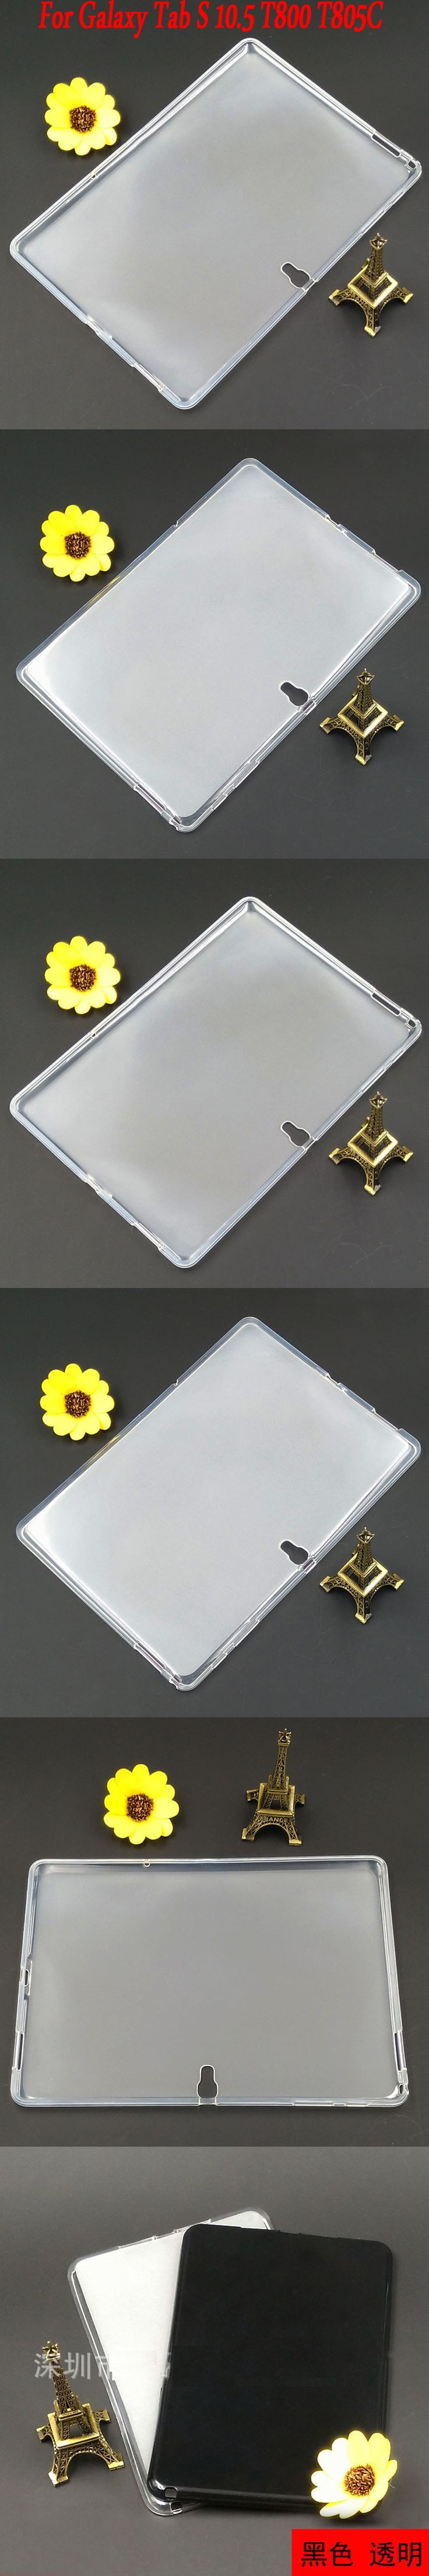 For Samsung Galaxy Tab S 10.5 T800 T805C silicone case Slim Crystal Clear TPU Silicone Protective Back Cover